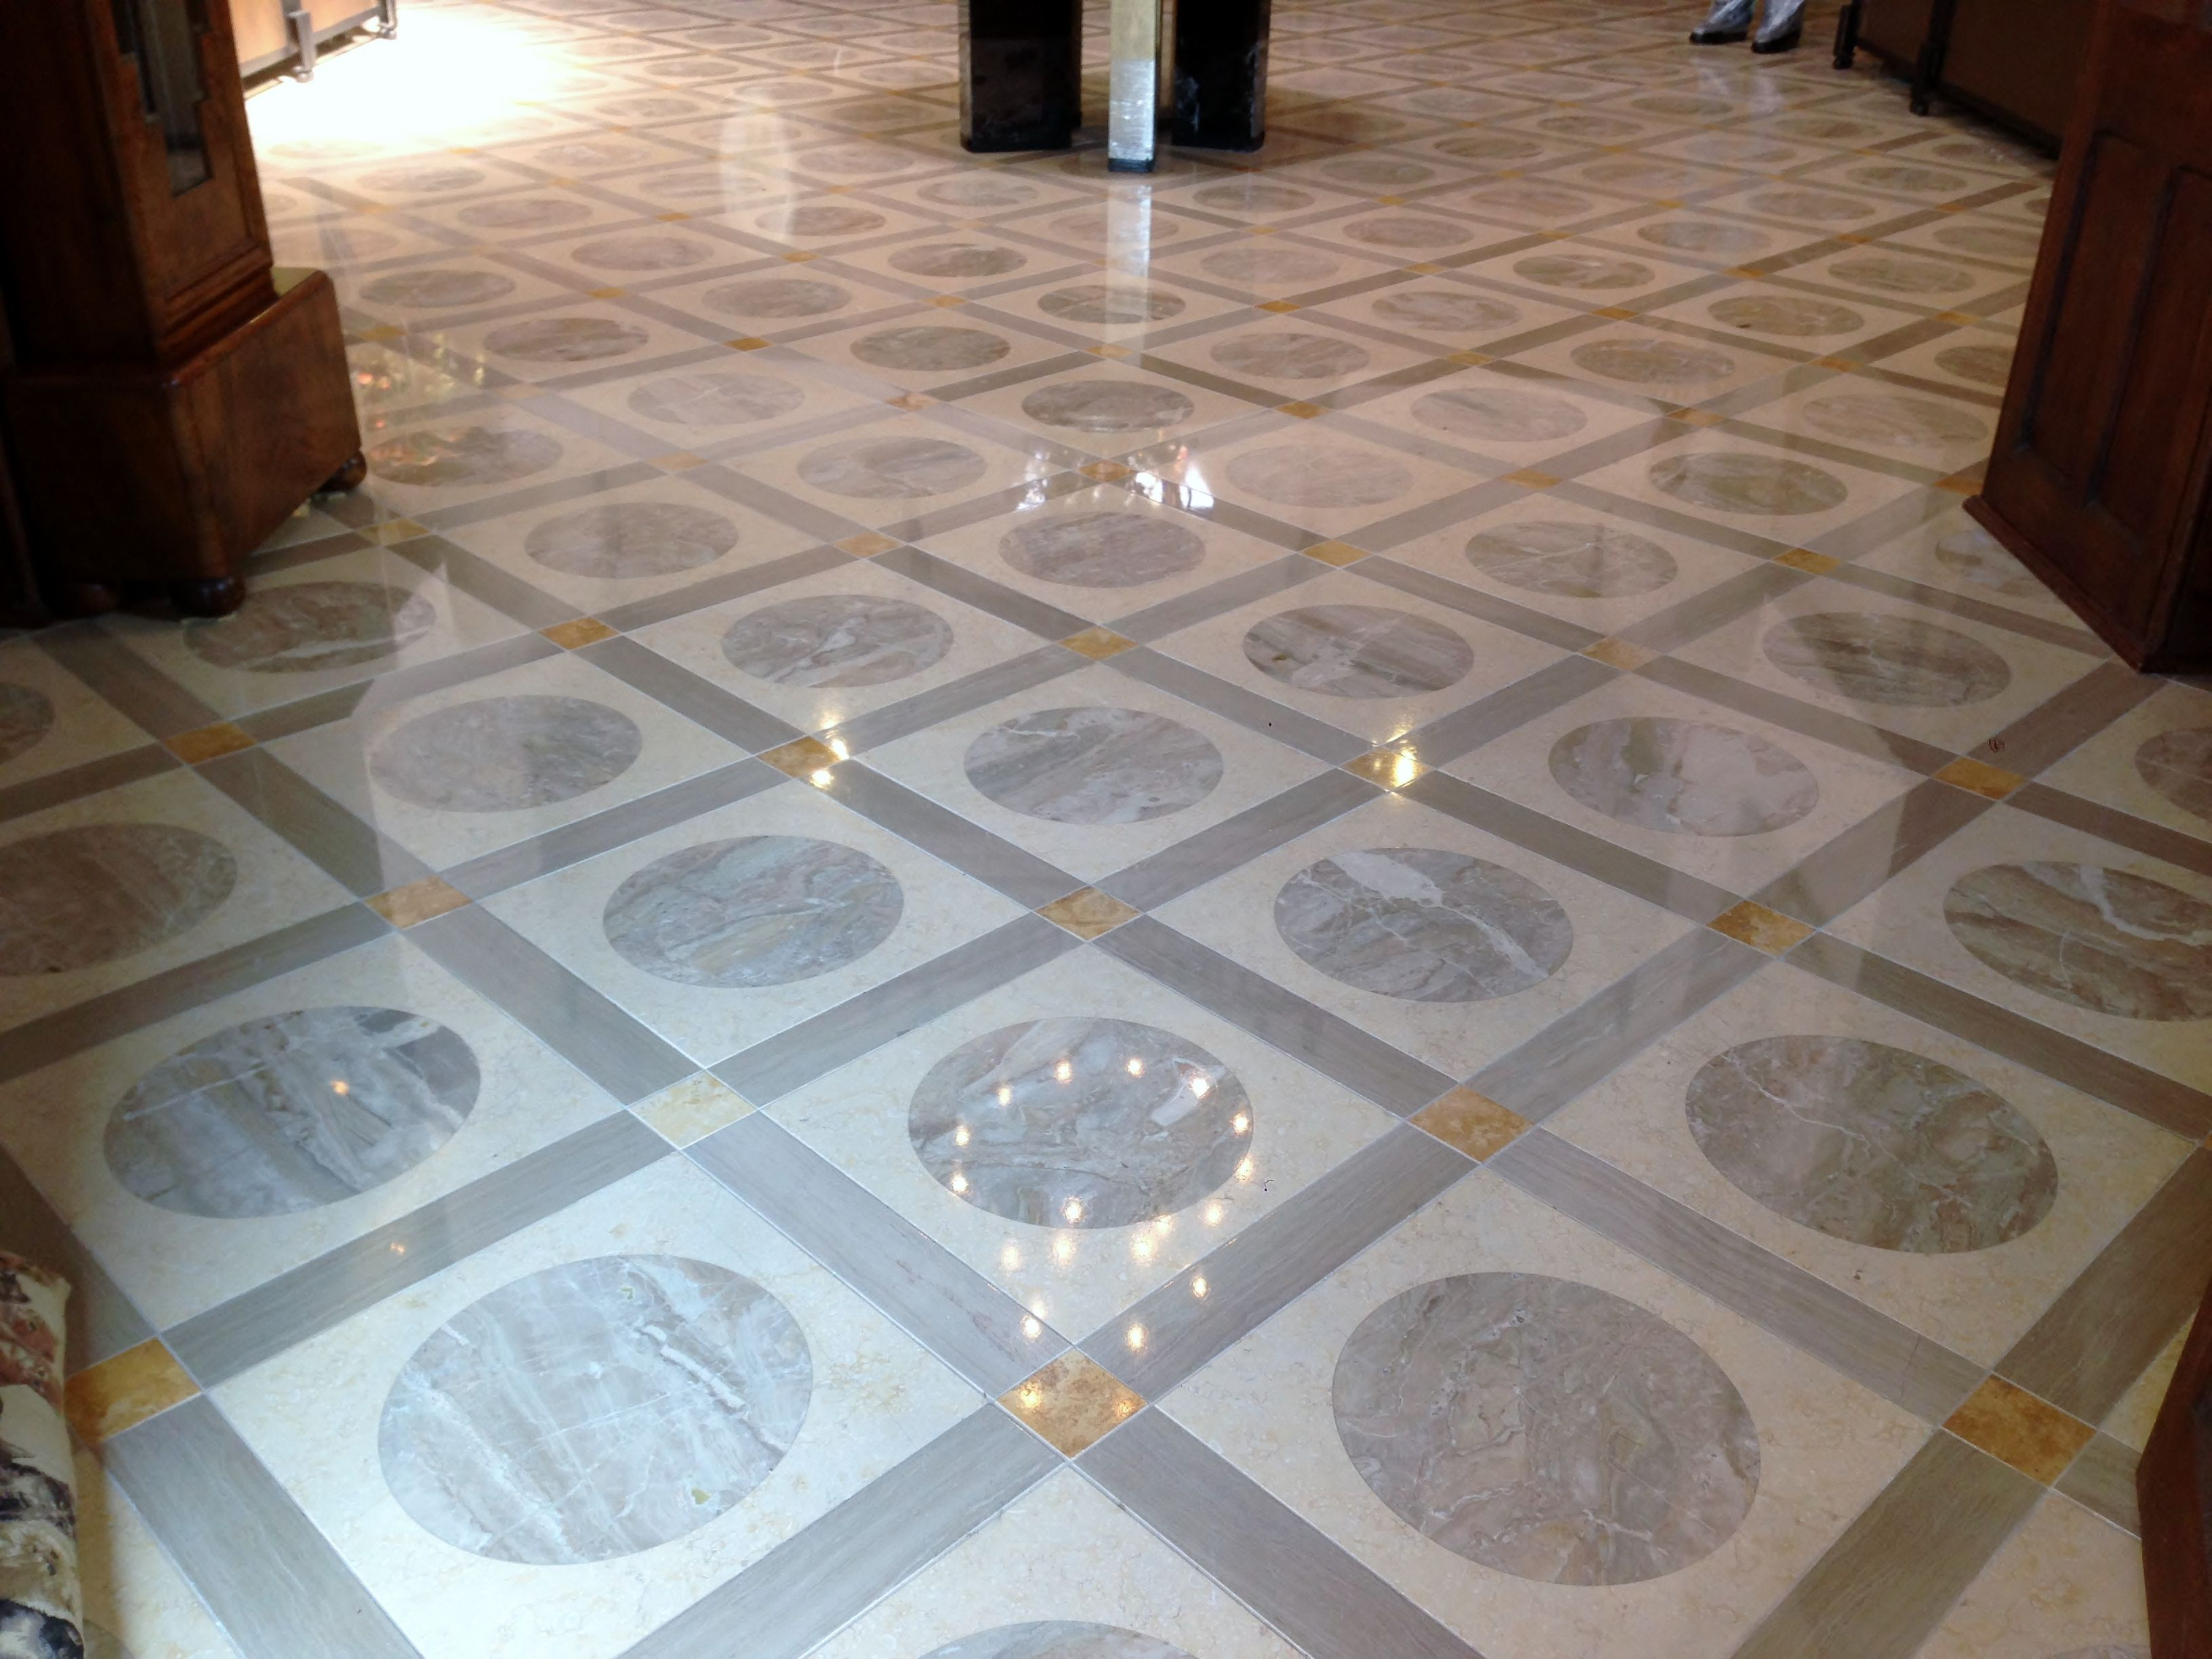 Marble Floor Cleaning Grout Cleaning Diamond Honing Diamo - Sealing honed marble floors